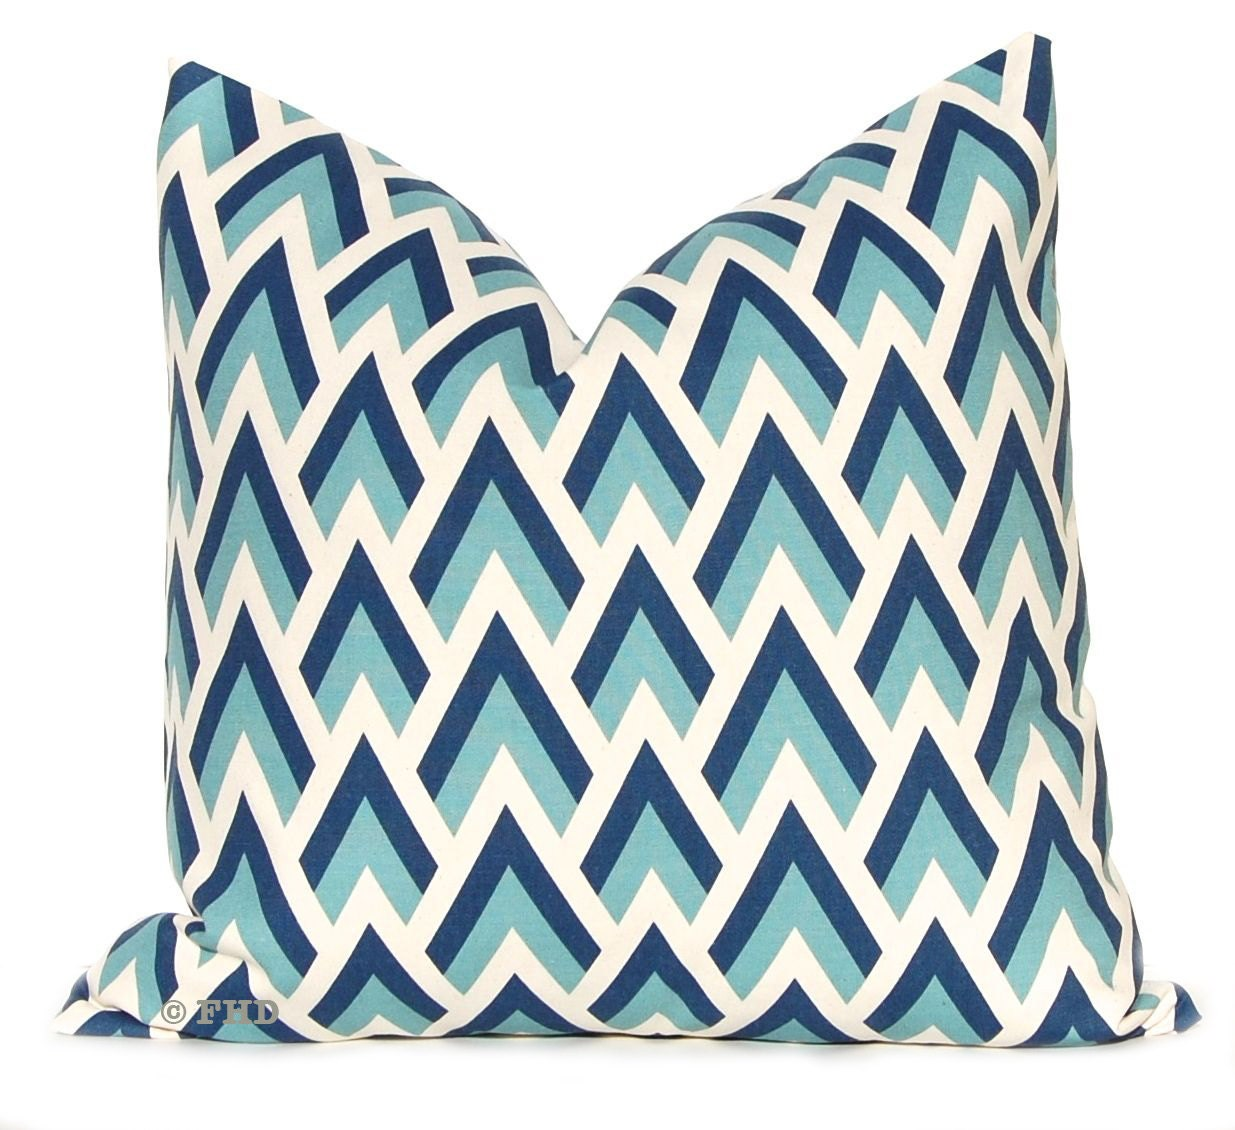 Decorative Pillows Navy : Decorative Throw Pillow Covers Navy and Aqua on Natural 20 x